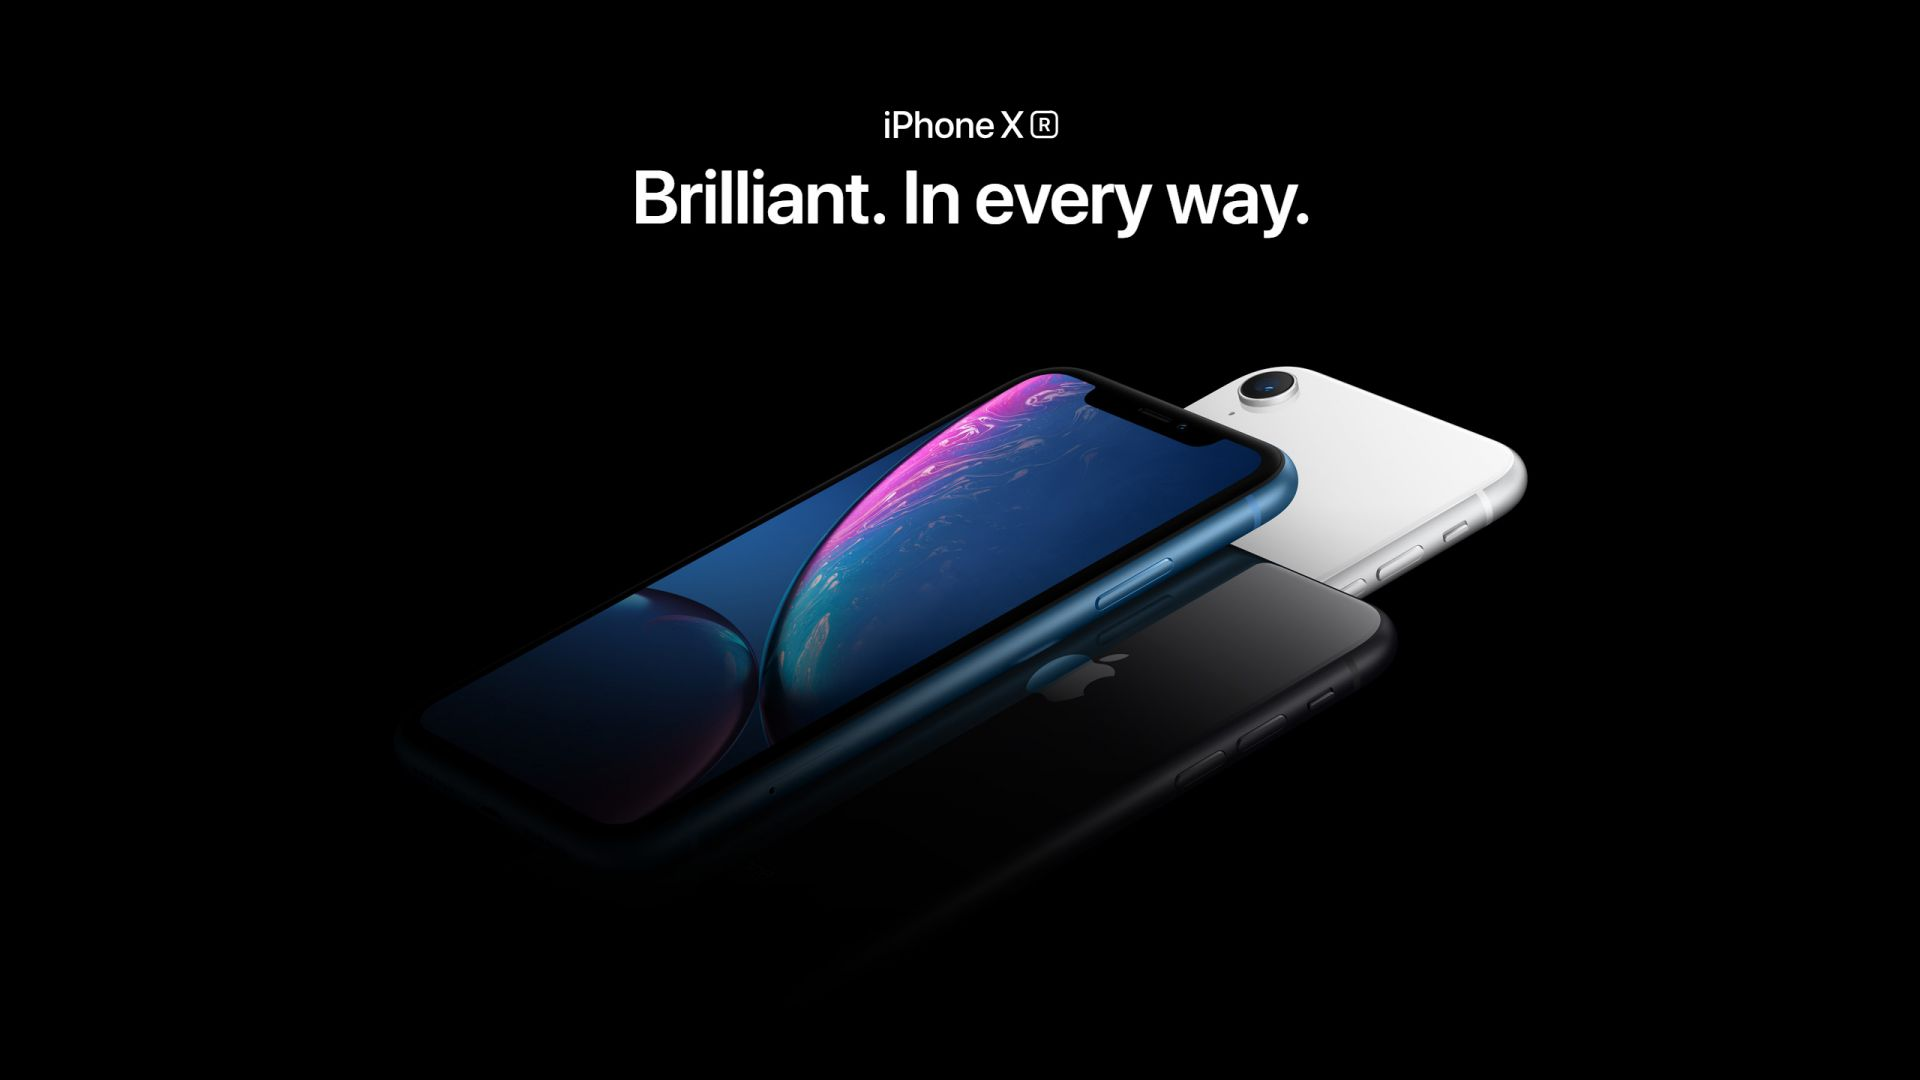 Айфон XR, голубой, черный, белый, iPhone XR, blue, black, white, smartphone, Apple September 2018 Event (horizontal)